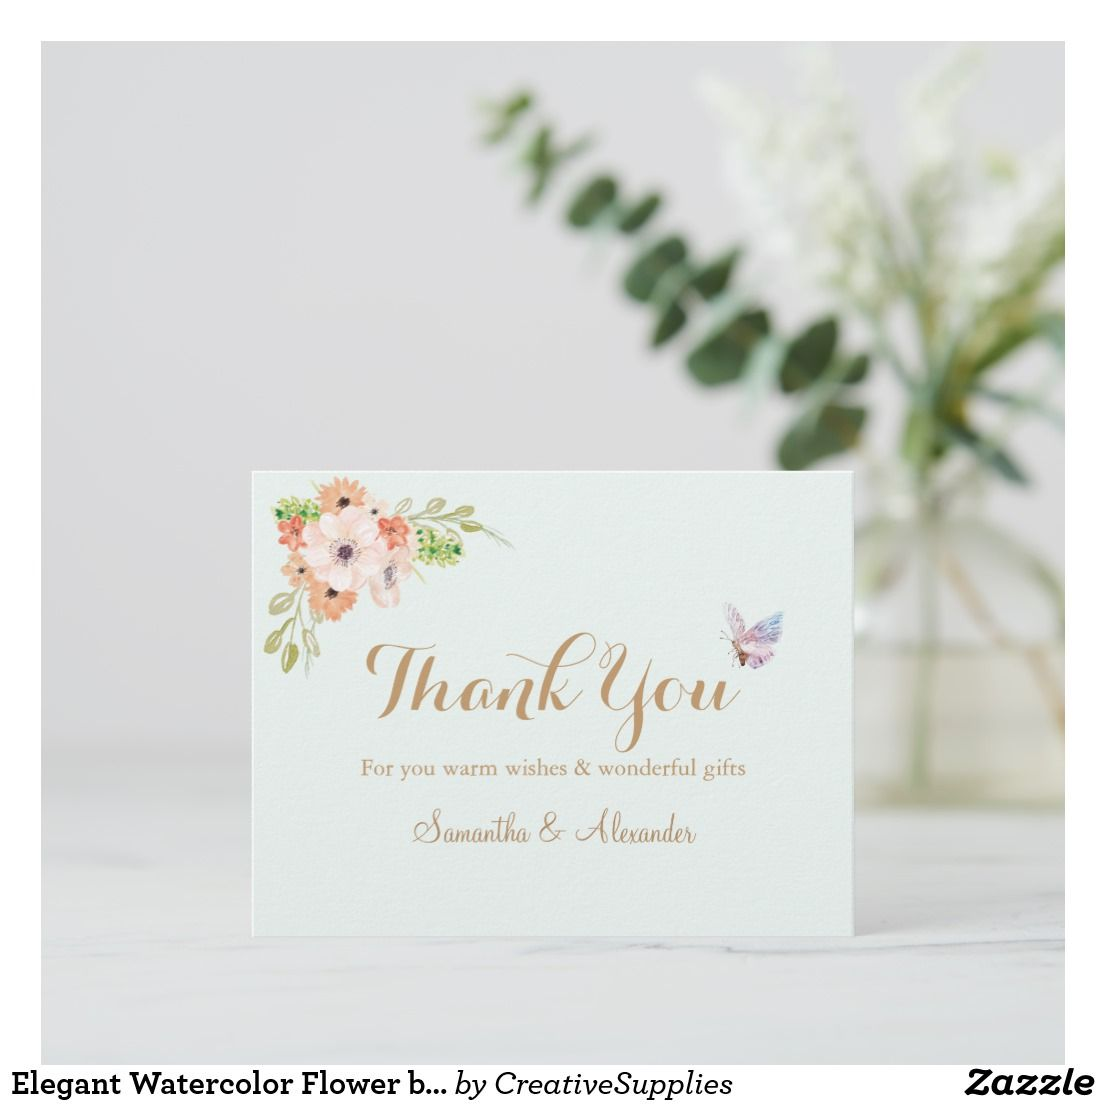 Elegant Watercolor Flower Butterfly Thank You Card Baby Shower Thank You Cards Thank You Cards Baby Thank You Cards